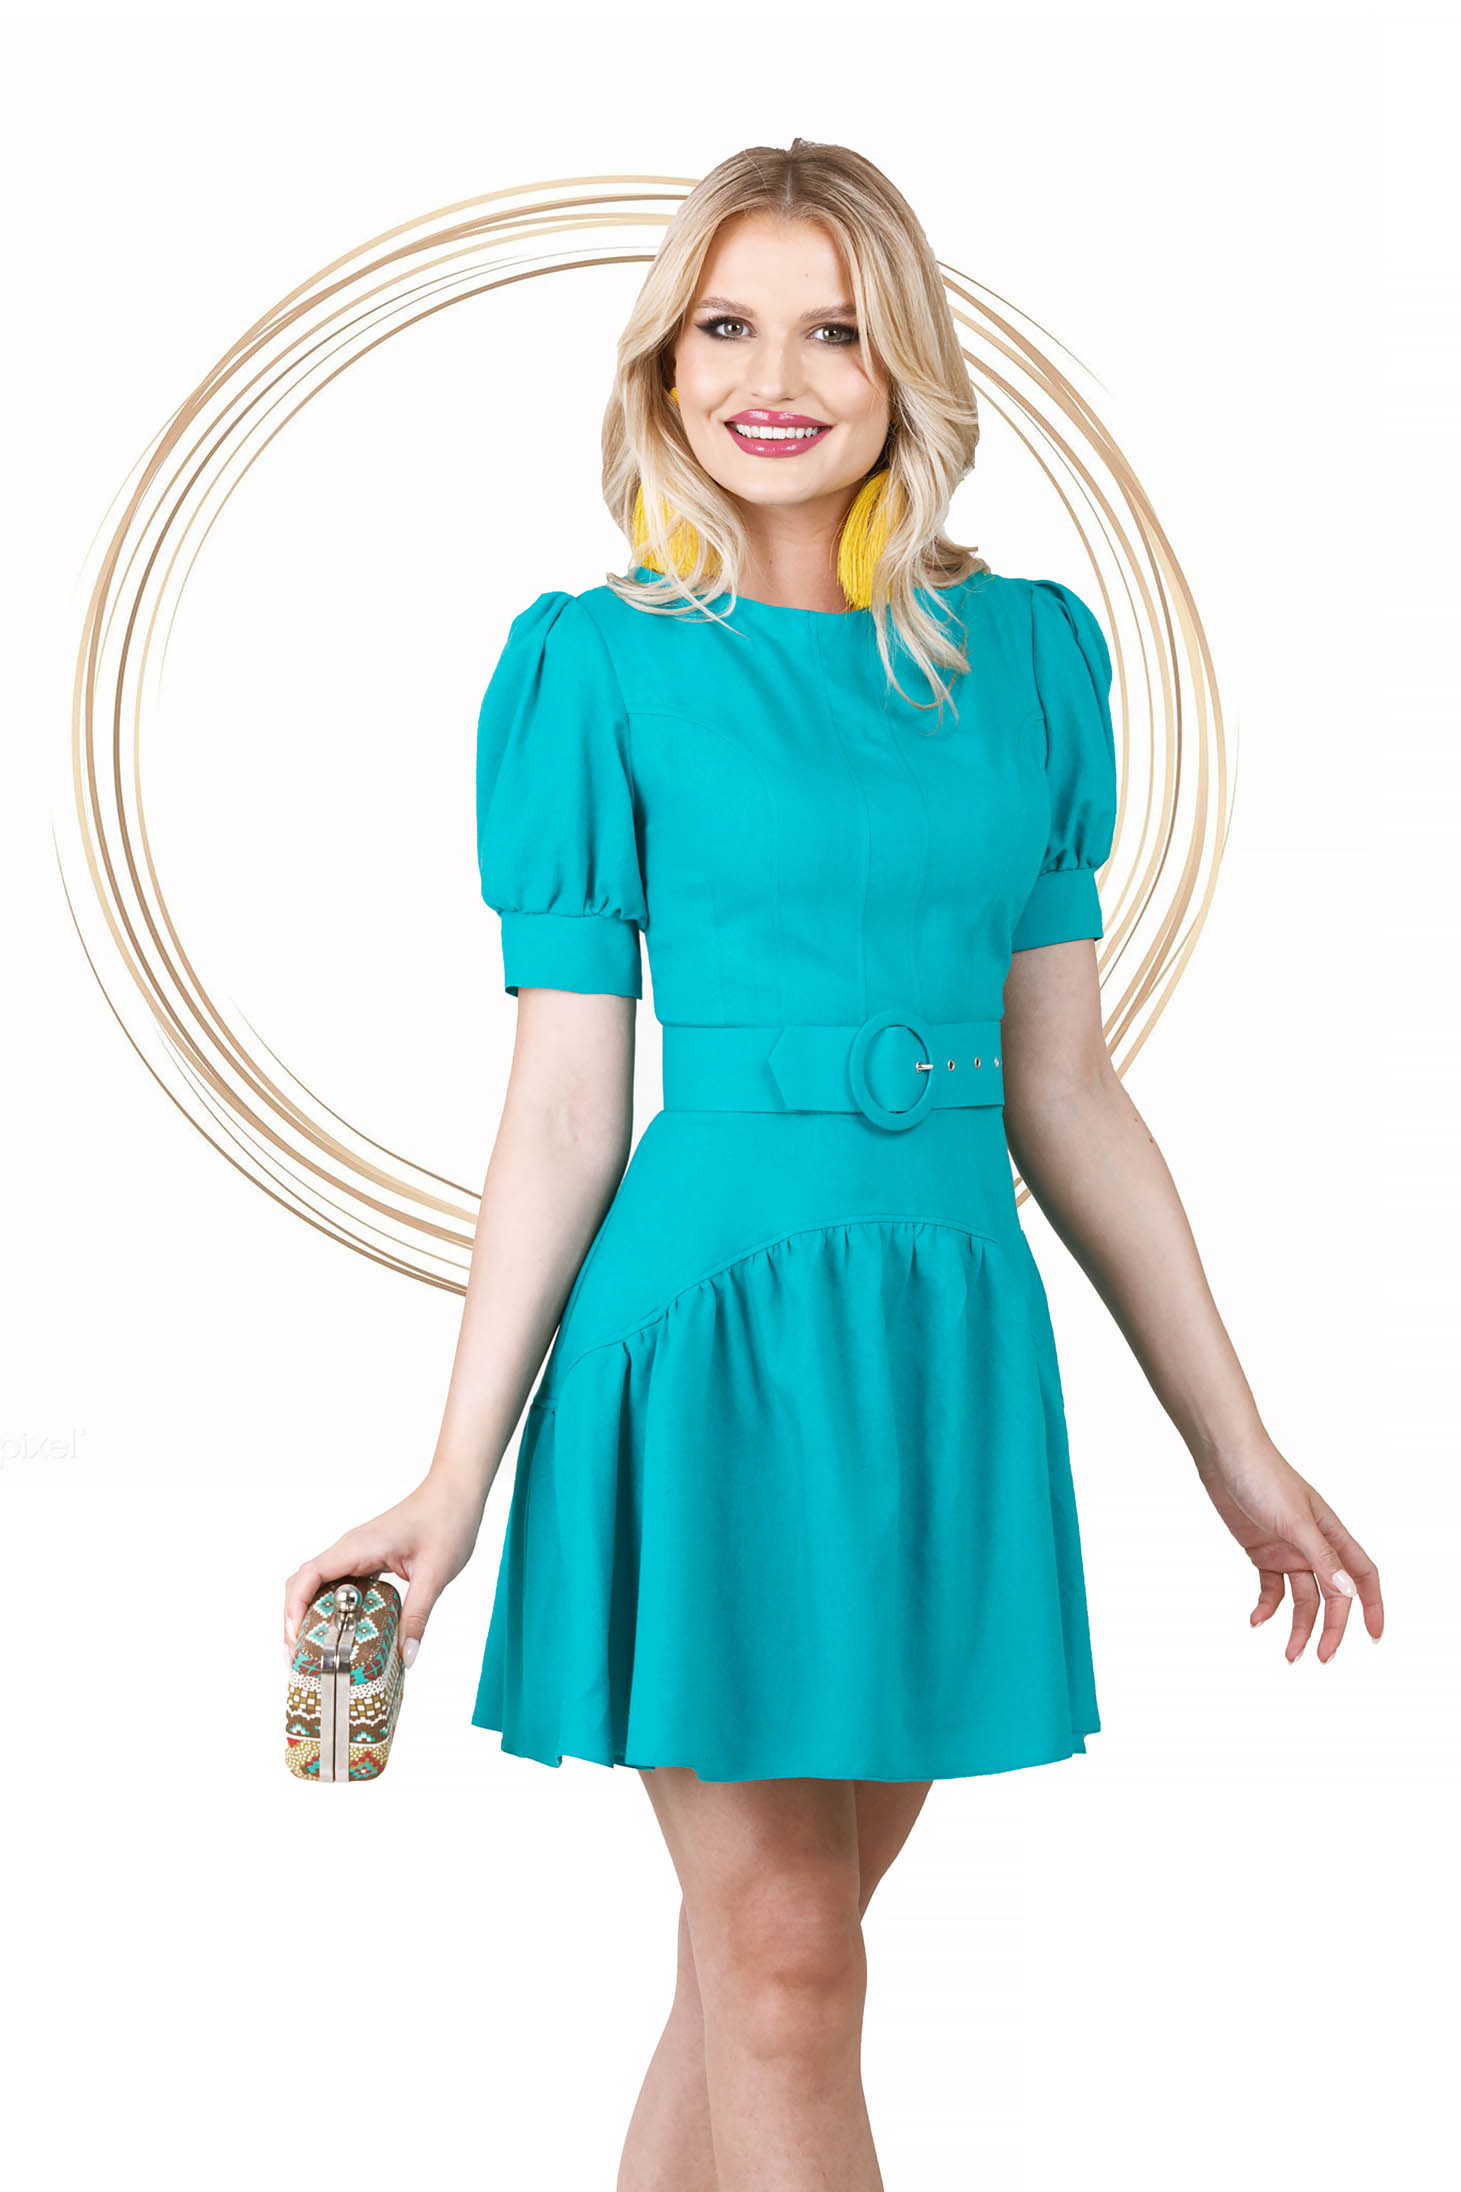 Turquoise dress short cut asymmetrical cloche high shoulders with ruffles at the buttom of the dress